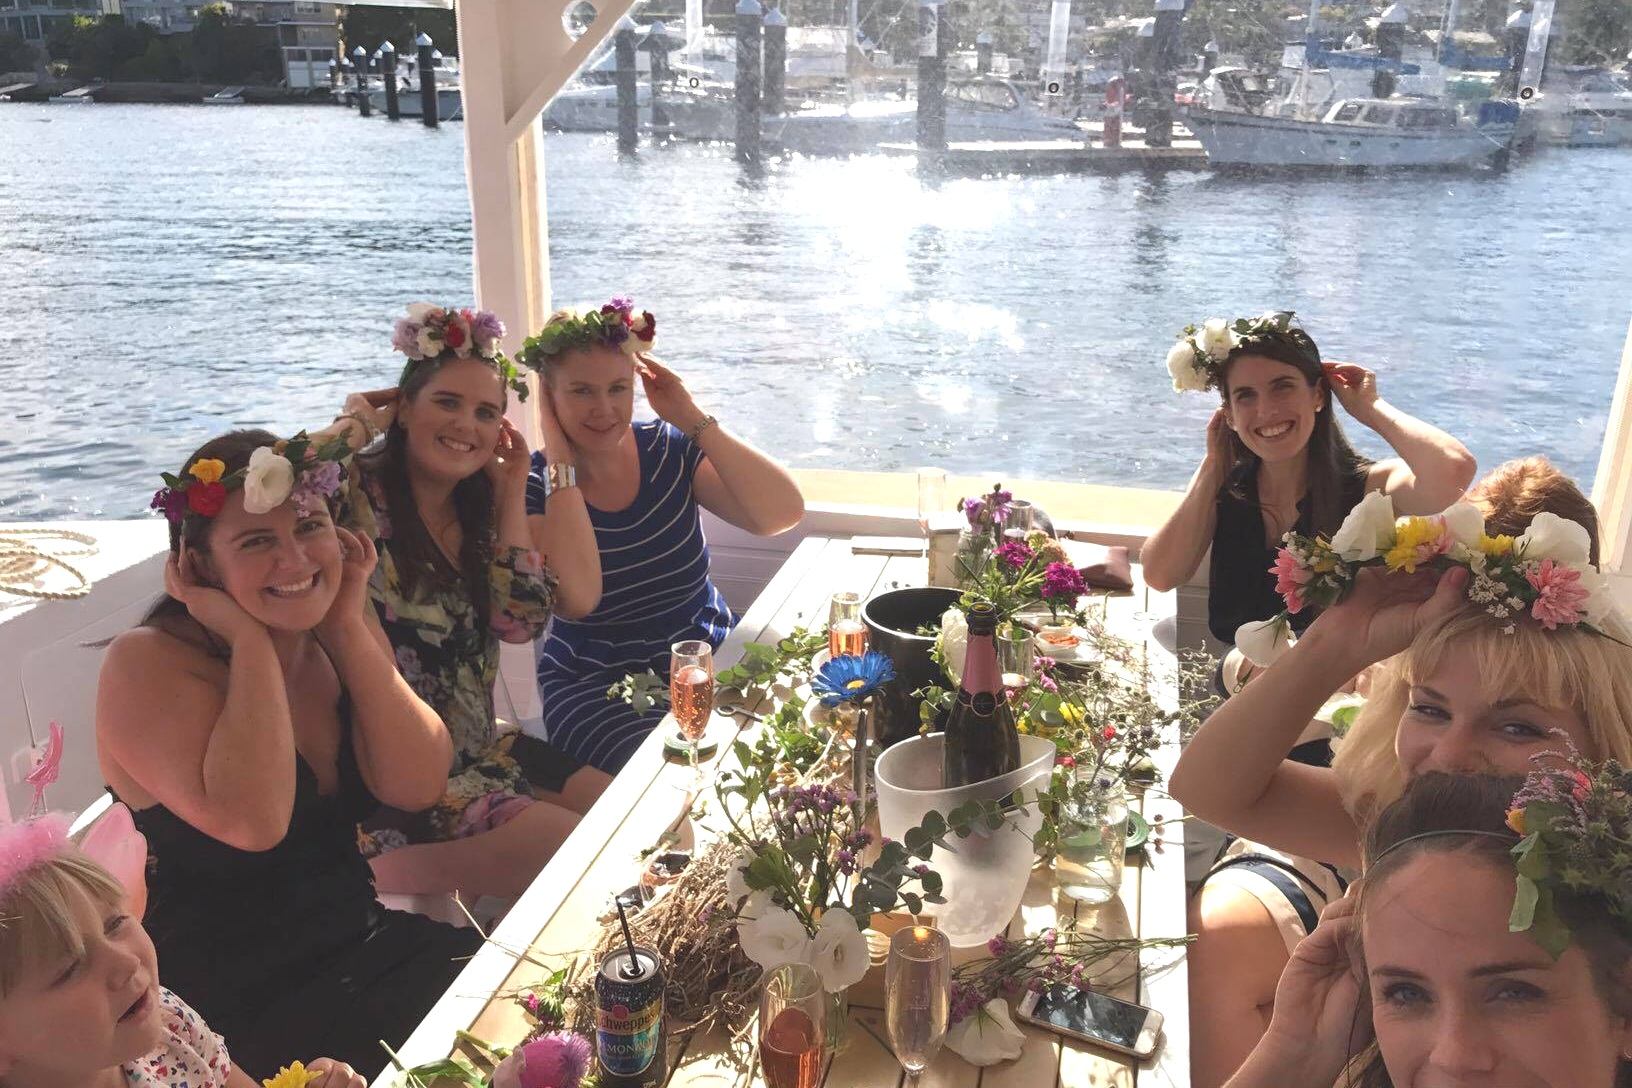 CRONULLA FERRIES - A Venue With A Difference – Cruising on Port Hacking! Cronulla Ferries is a family owned business that has been operating on Port Hacking for over 25 years. Customer service is our passion and our dedicated and professional team are…